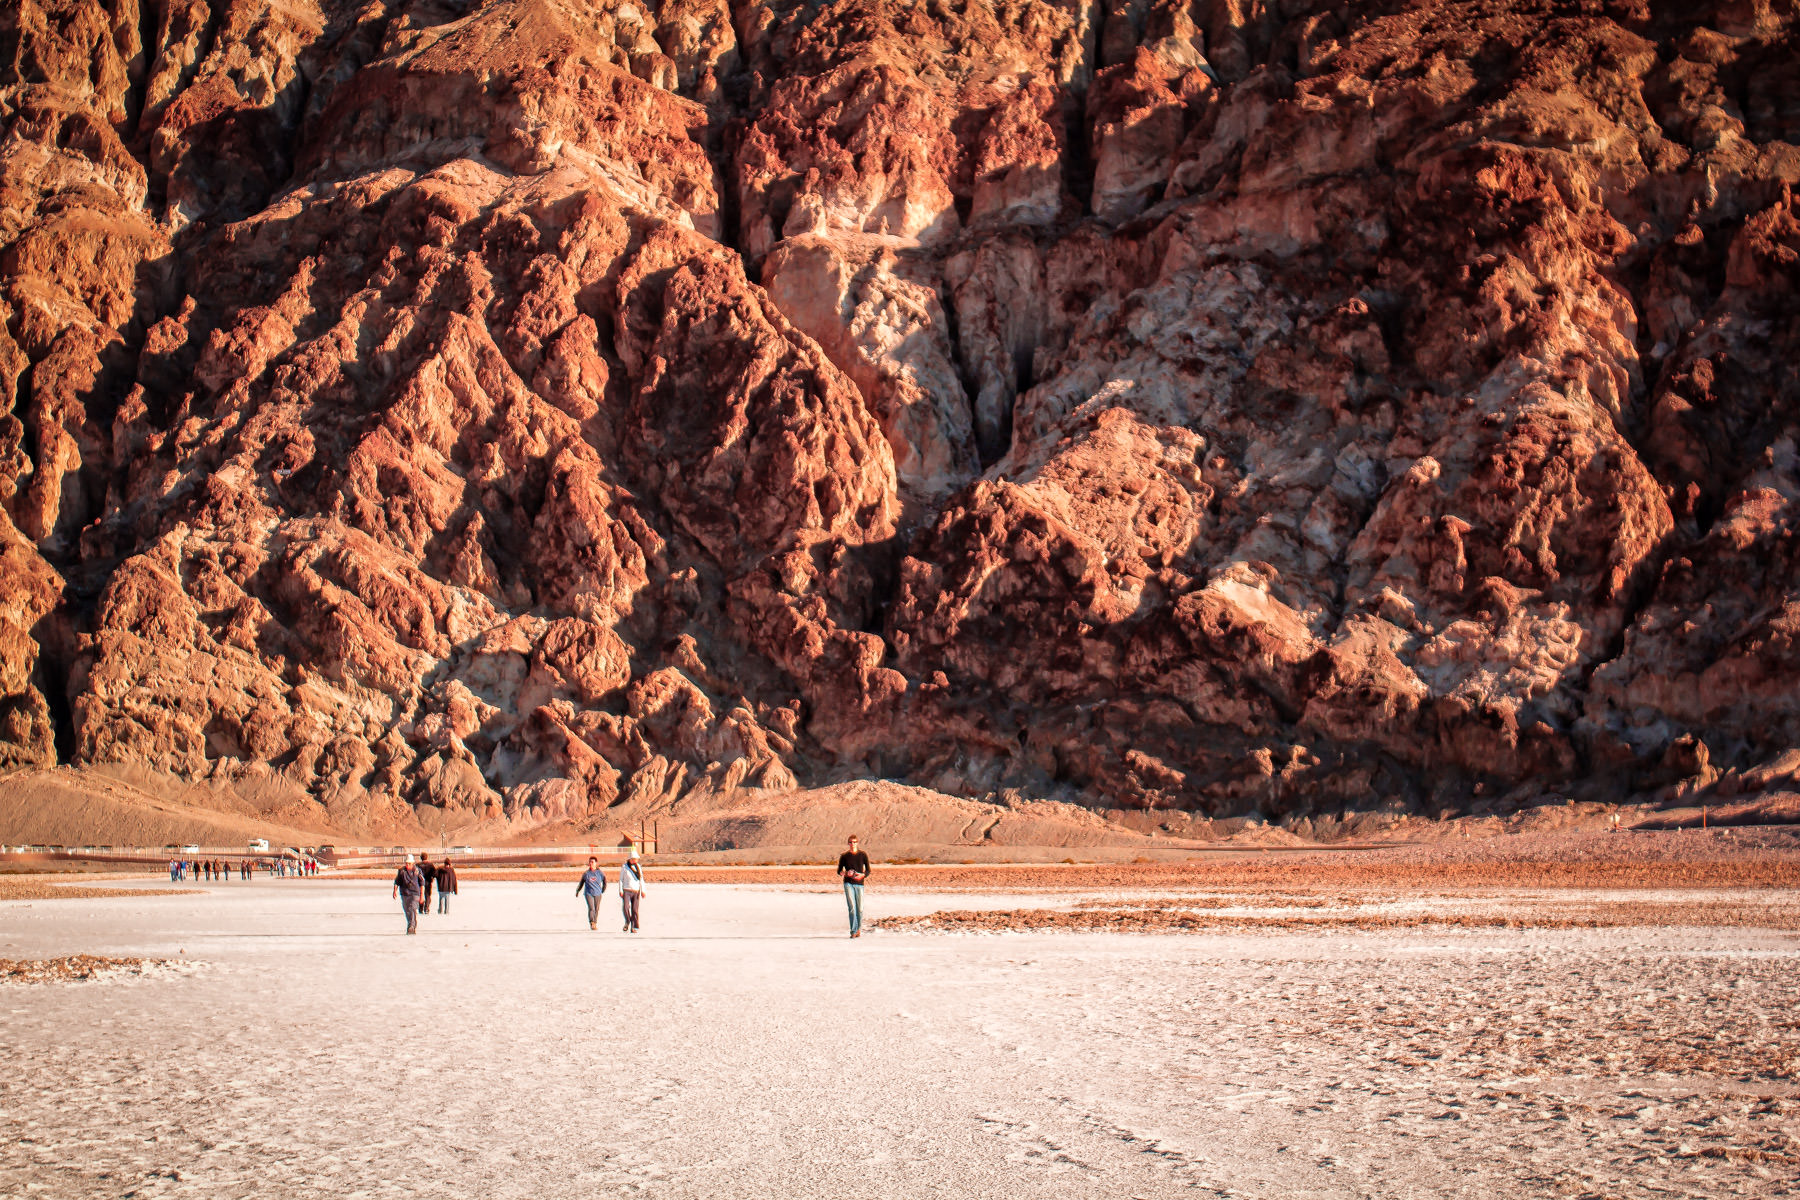 Visitors to Death Valley National Park's Badwater Basin—the lowest point in North America (282 ft or 86 m below sea level)—are dwarfed by the rocky face of an adjacent mountain.